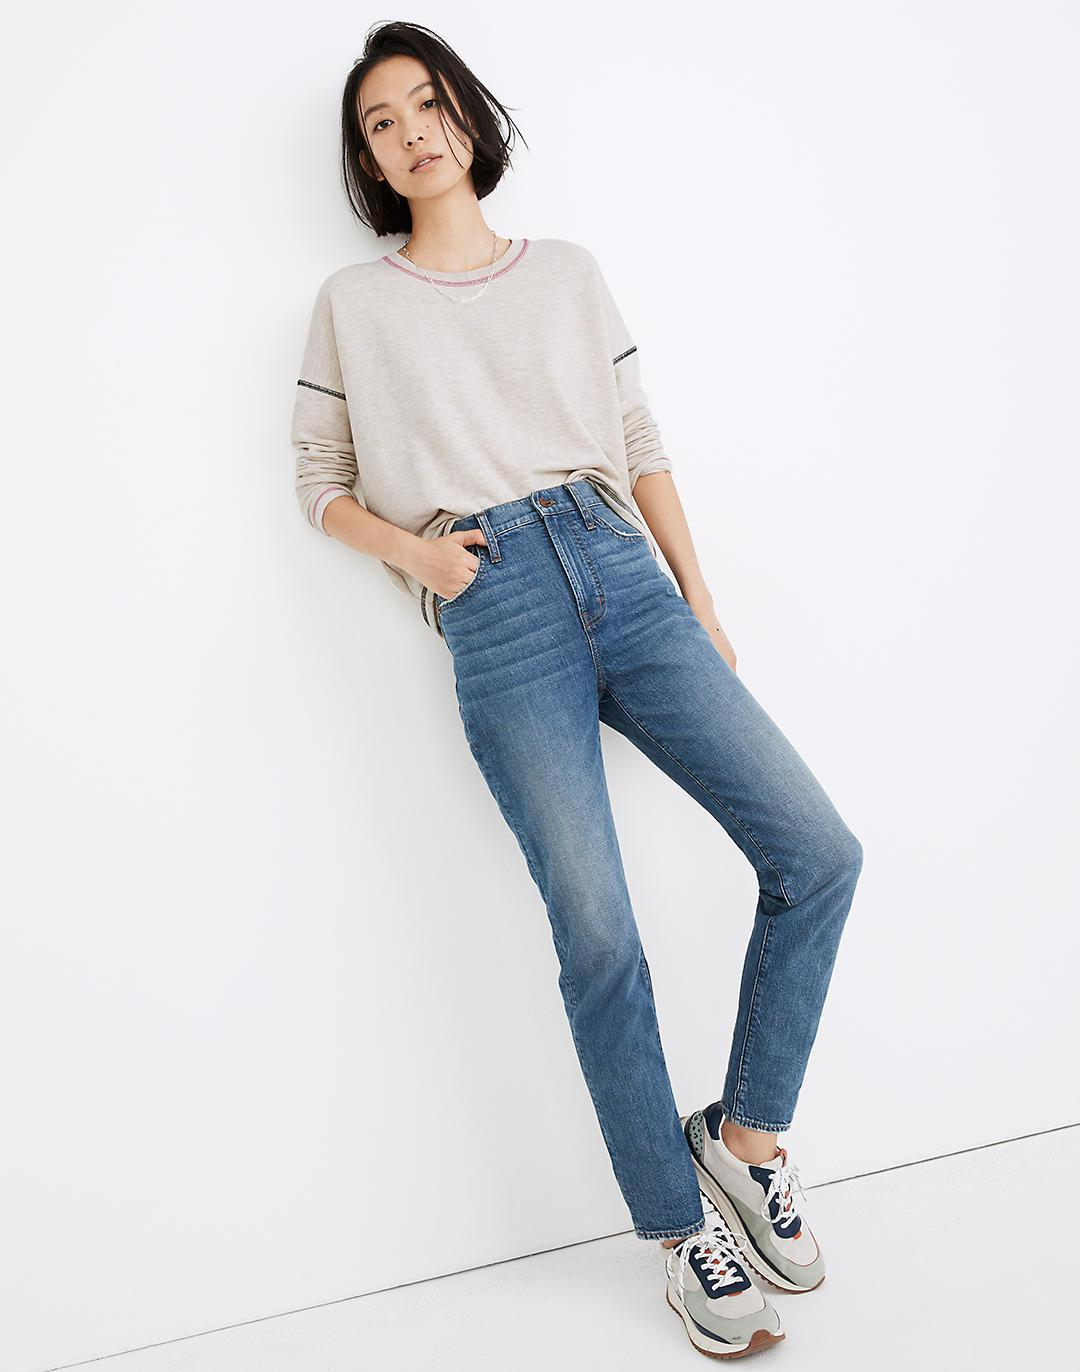 The Perfect Vintage Full-Length Jean in Sanderson Wash